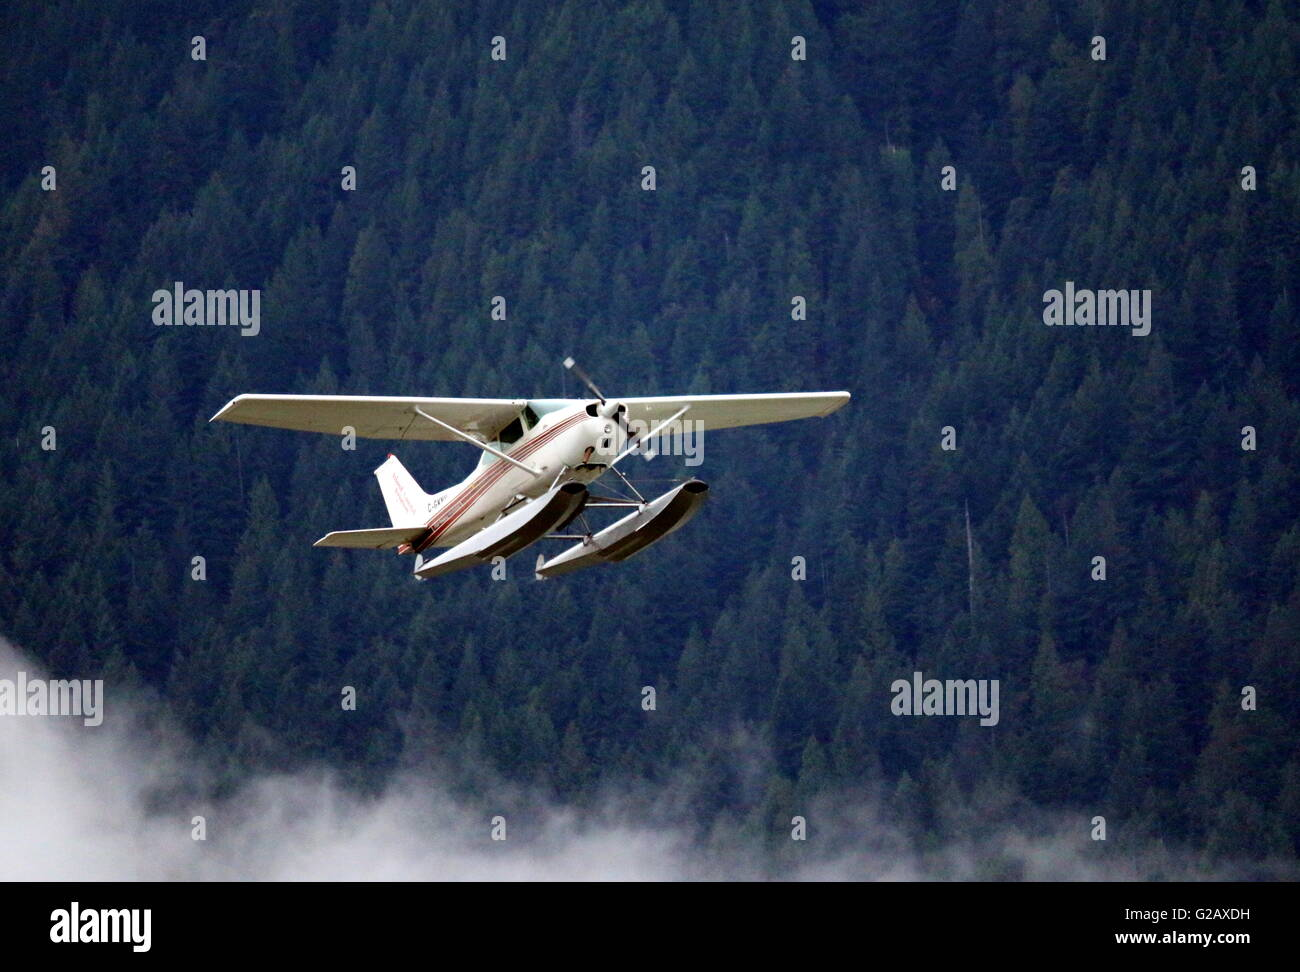 Flying Practice 12 - Cessna Aircraft - Stock Image